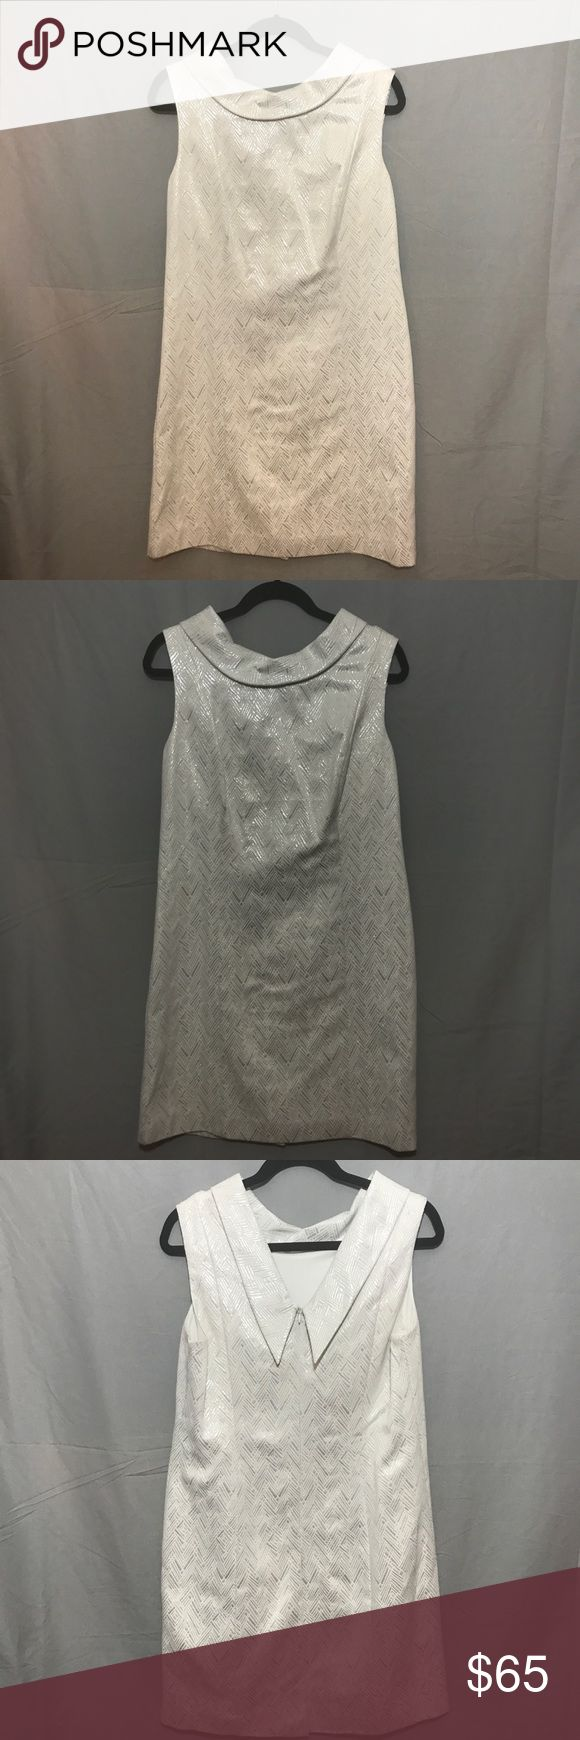 """Donna Ricco Dress This beautiful Donna Ricco Dress has never been worn and it's a very eye catching dress. This would be the perfect dress if you were going out on date, a wedding or any other special events. This dress is a nice cream warm color with a shining silver texture. (therefor it would look good at night to wear).   Shell = 36% Polyester, 52% Cotton & 12% Metallic Lining = 100% Polyester  Hollow to hem = 34"""" Shoulder = 15"""" Arm Circumference = 16"""" Bust = 38"""" Waist = 36"""" Hip = 38""""…"""